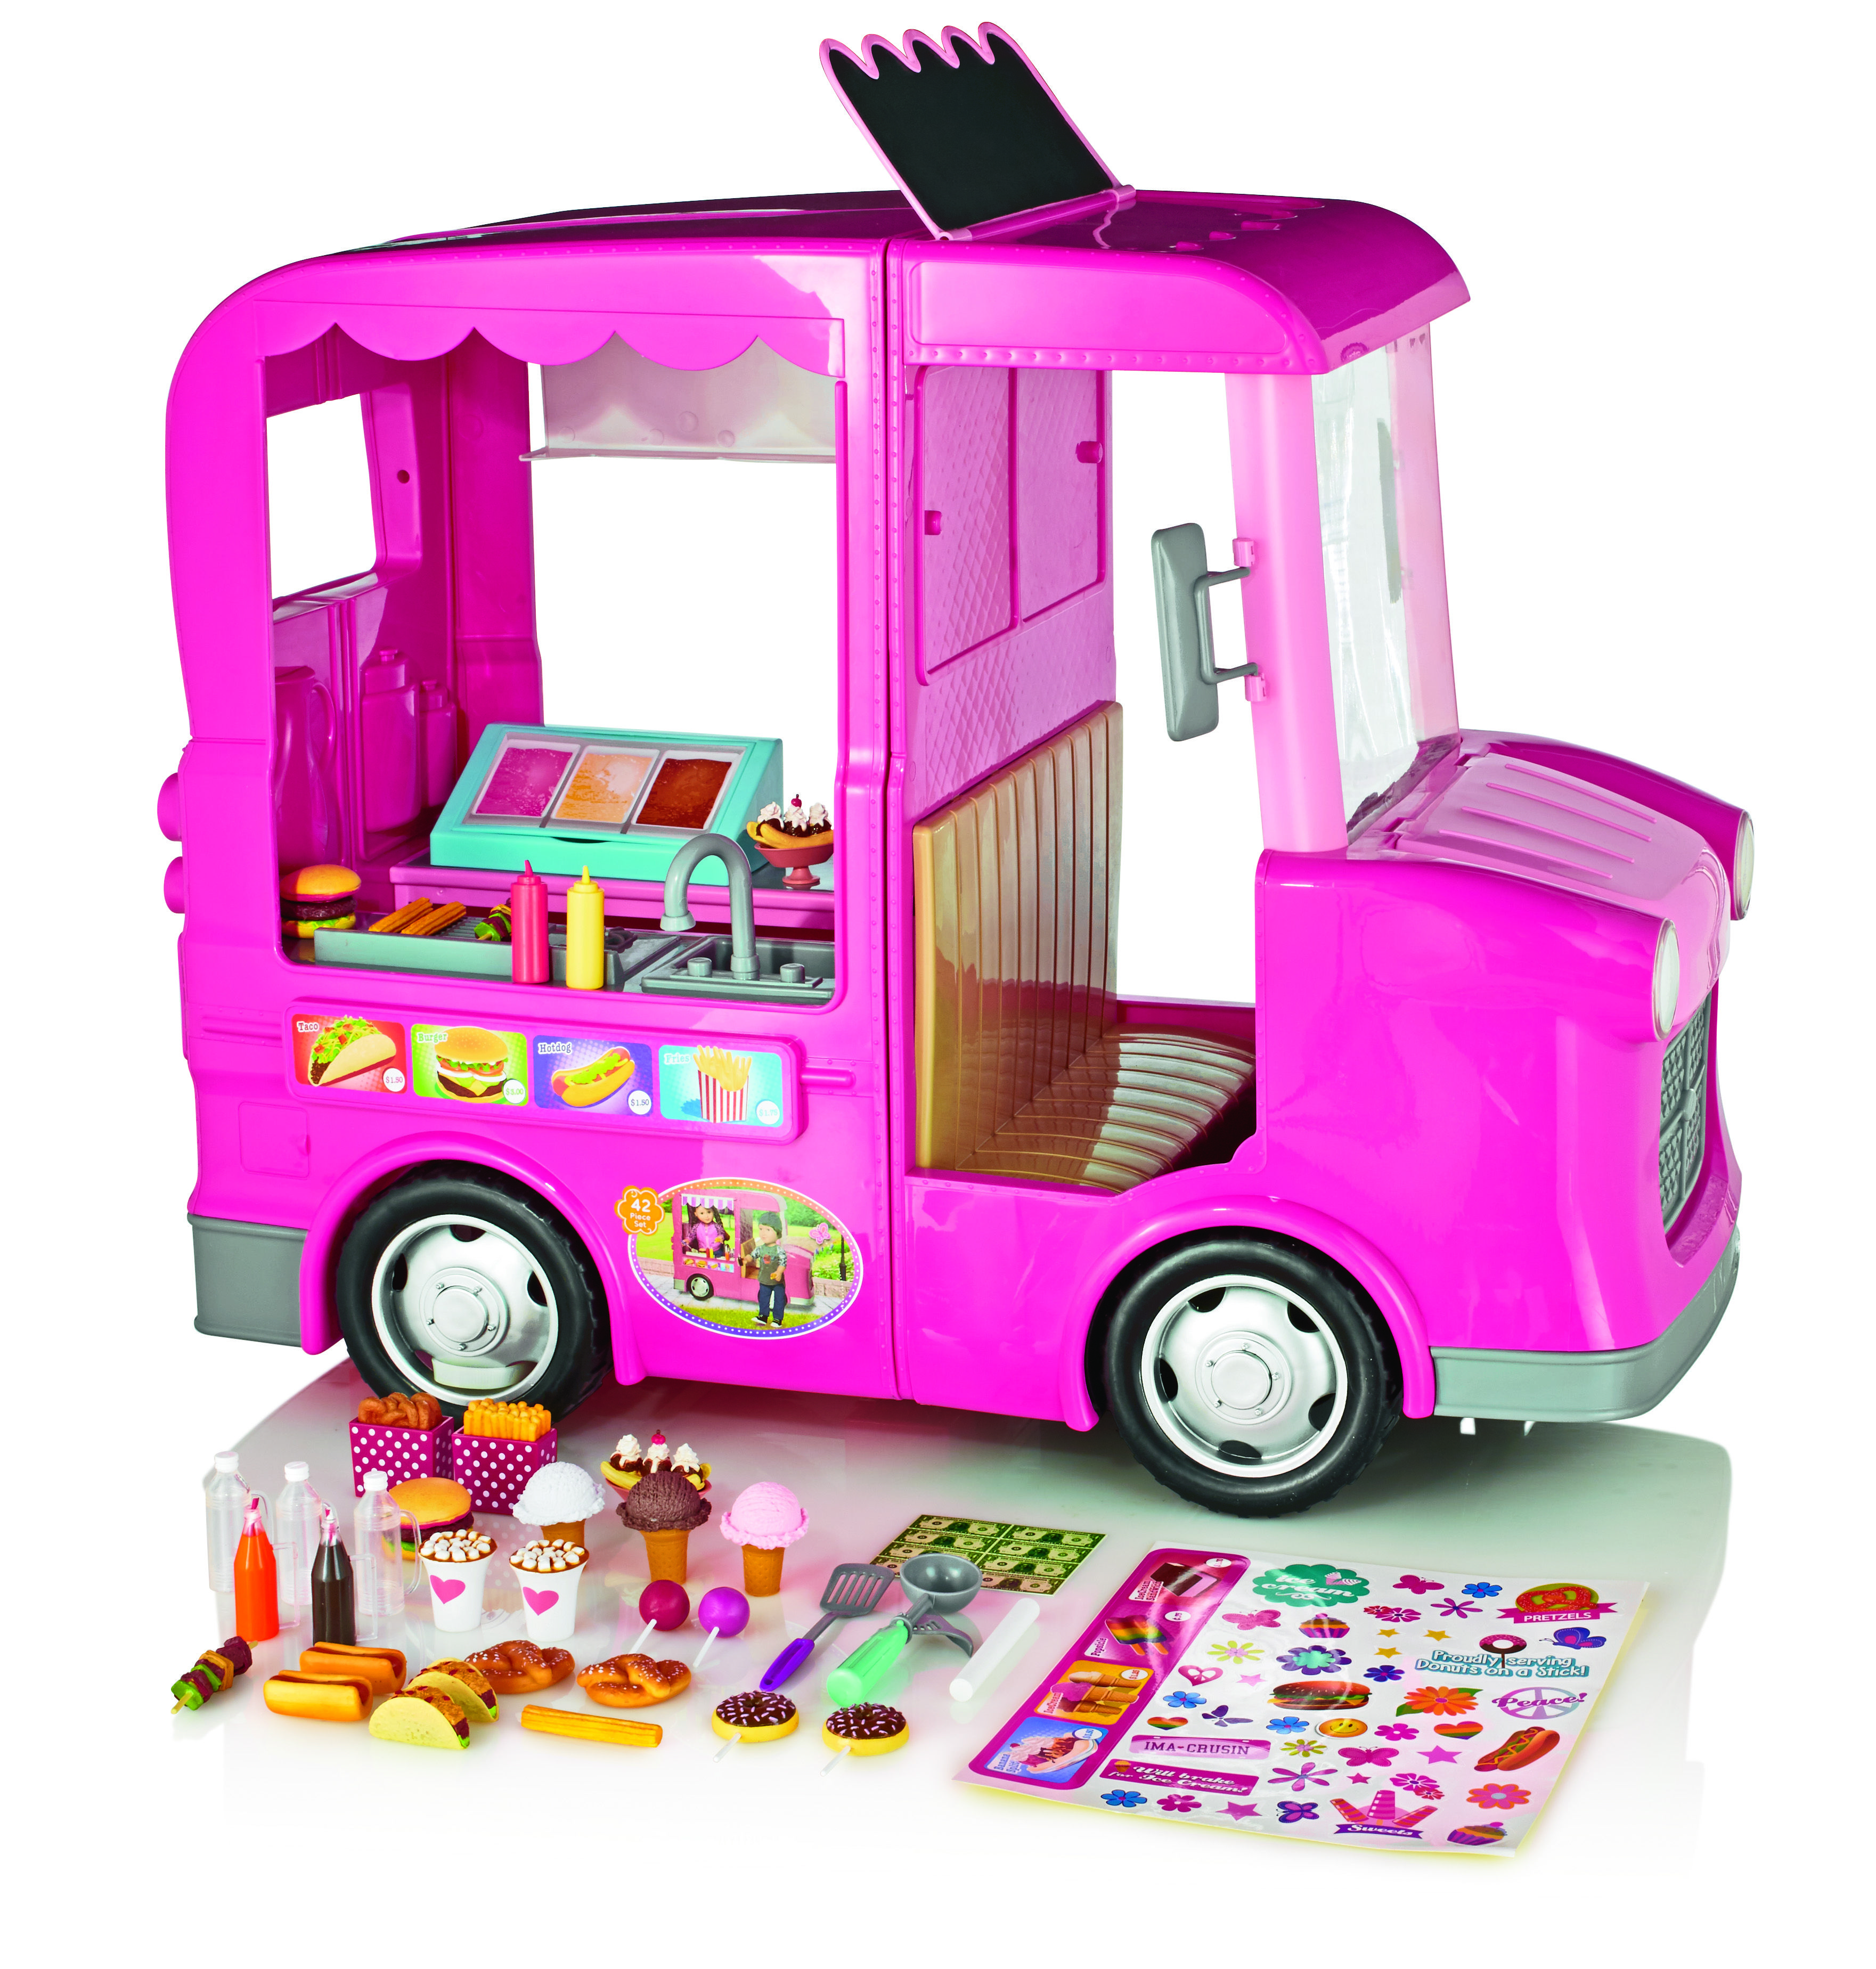 Walmart Toys Just For Girls : The my life as food truck a walmart exclusive is great